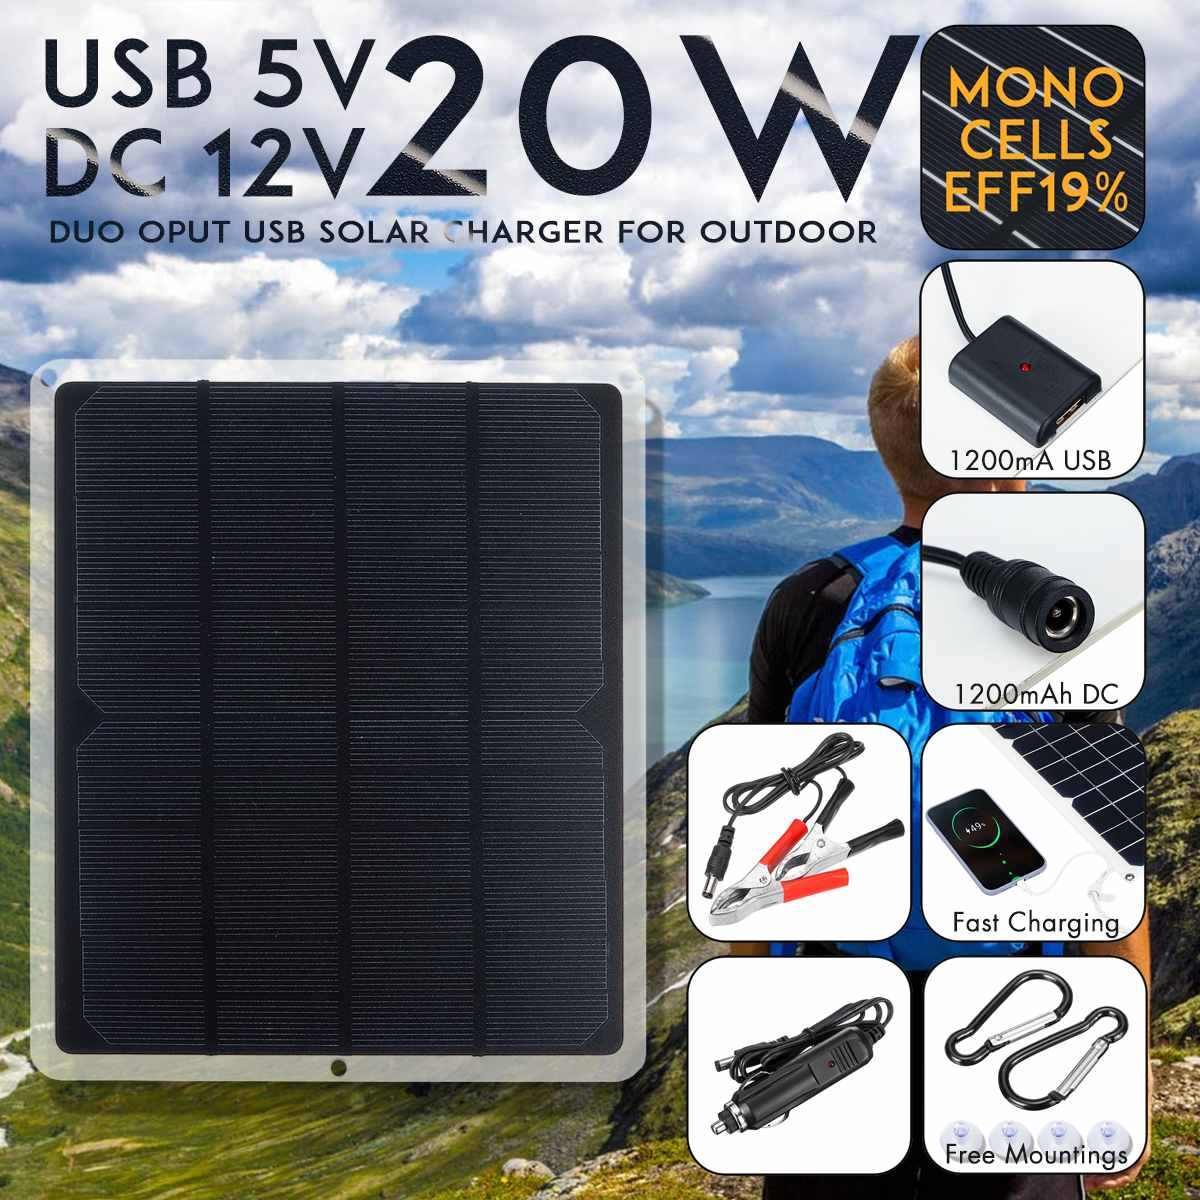 LEORY USB DC 12V 5V Solar Panel 20W Outdoor Portable Solar Cells Fast Soalr Charger For Battery Chargers Cigarette Lighter